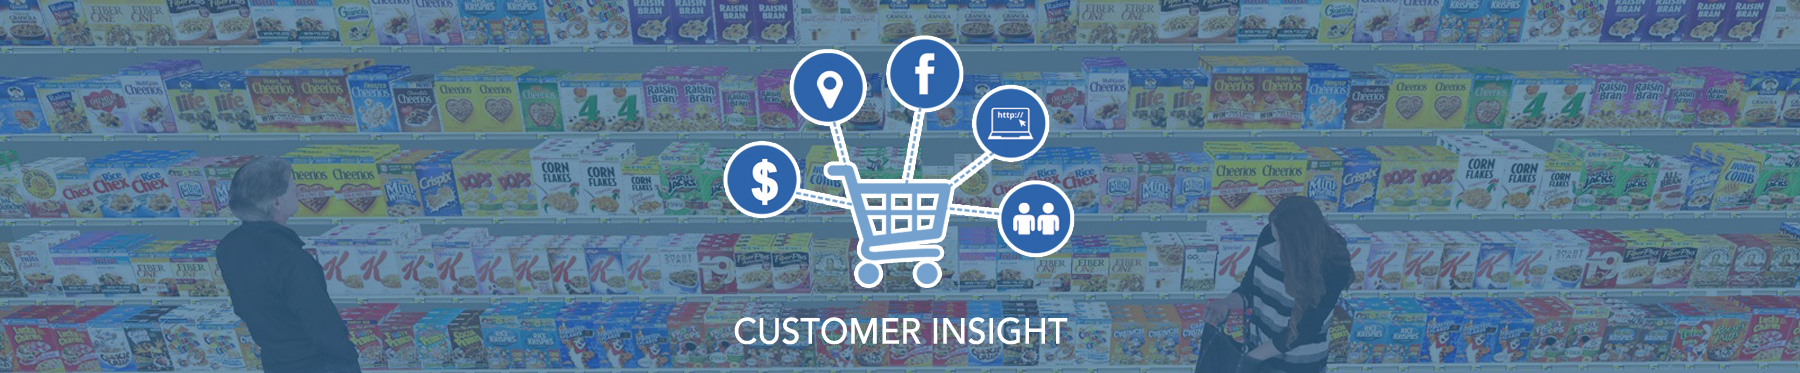 customer_insight